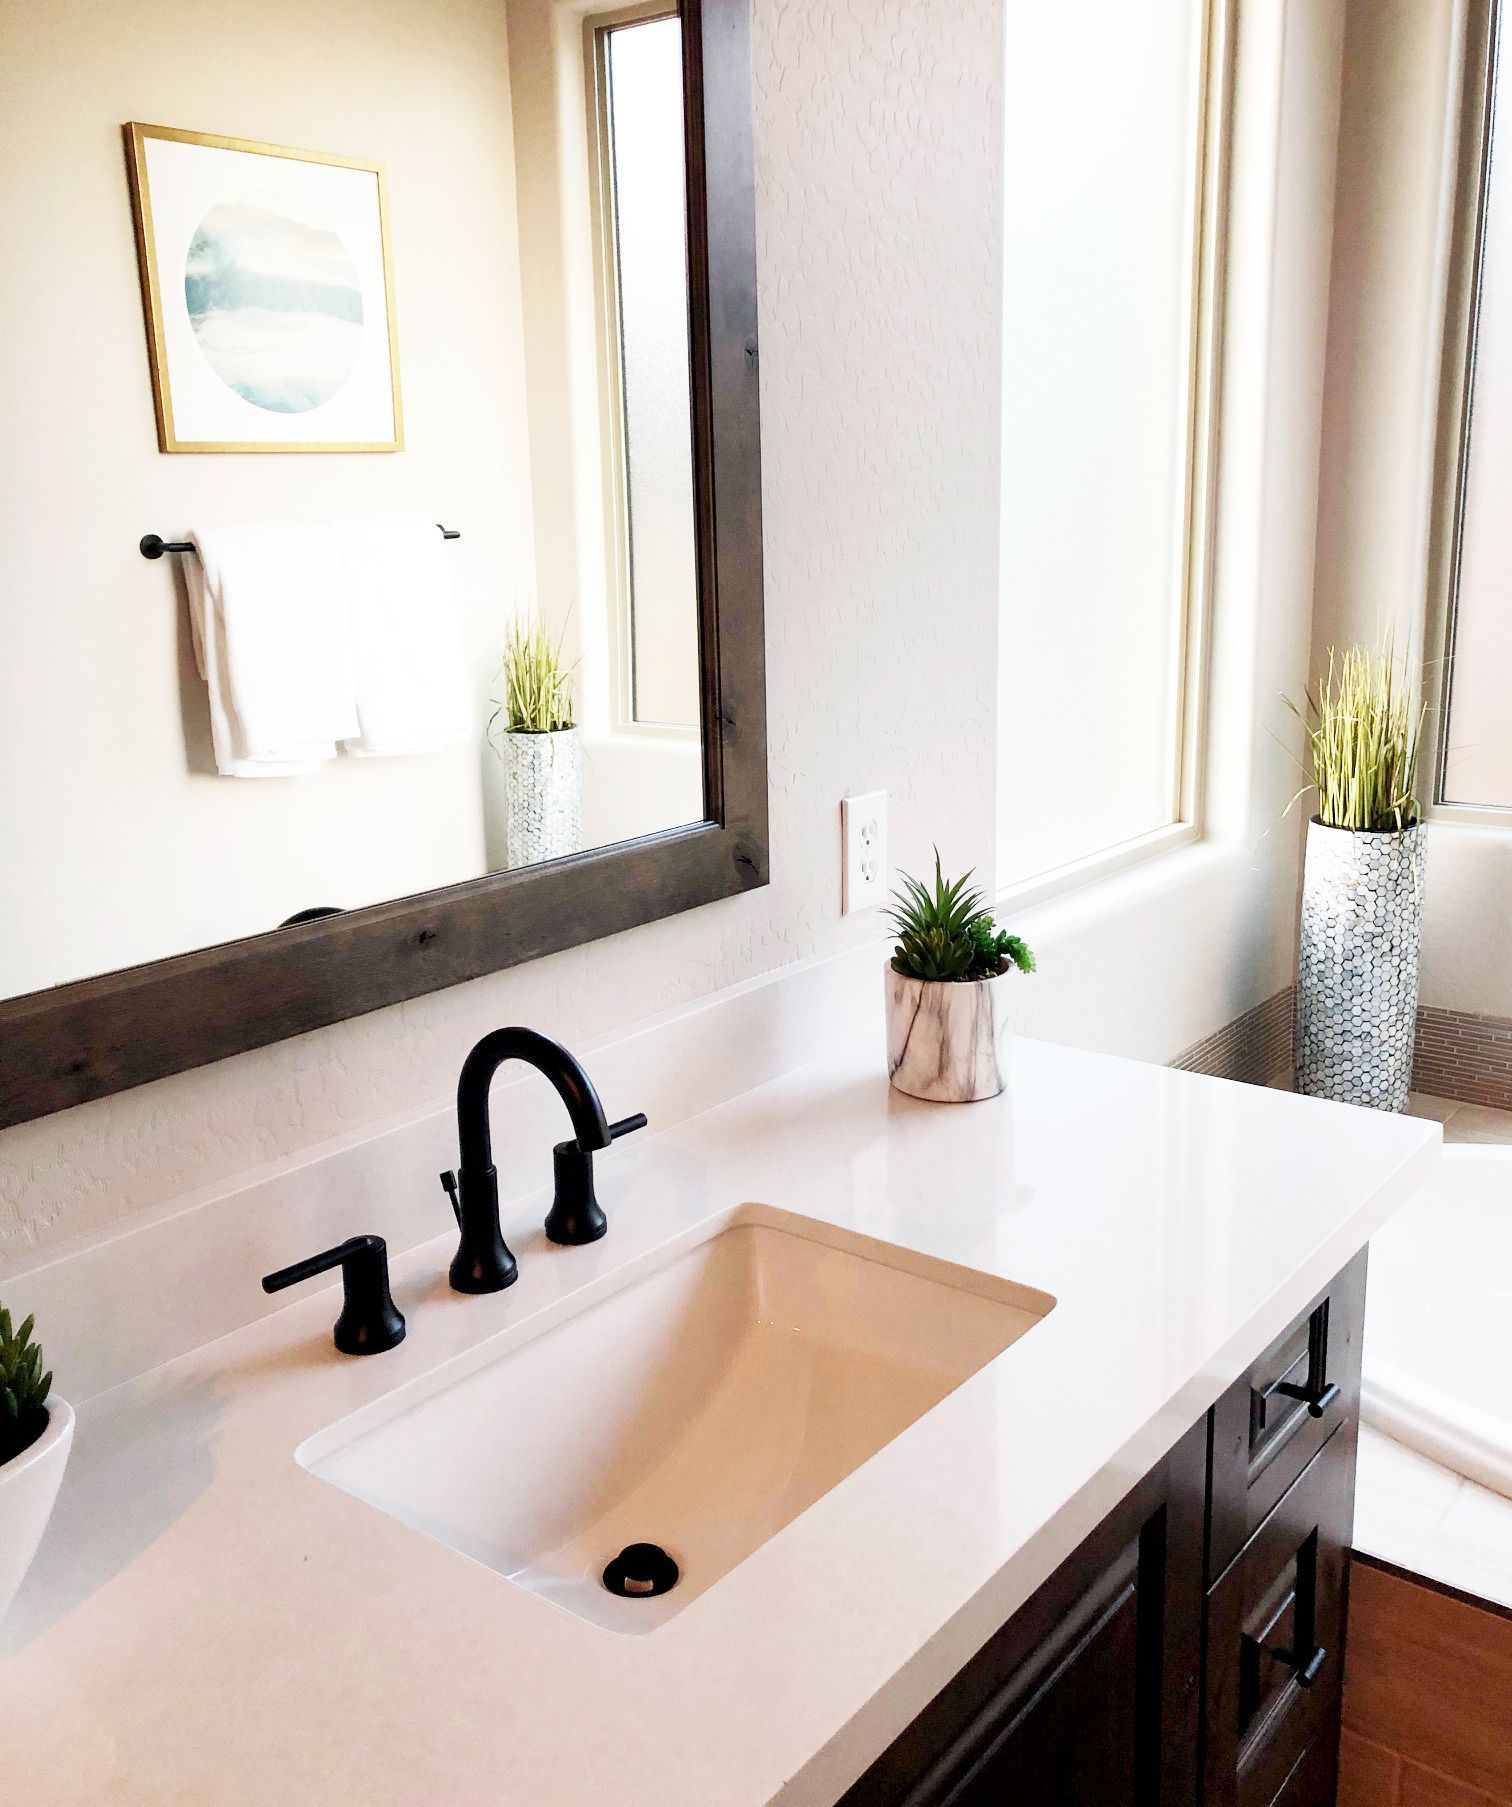 Photo of Brand new Bathroom With High End Finishes Brand new Bathroom With High End Finis…